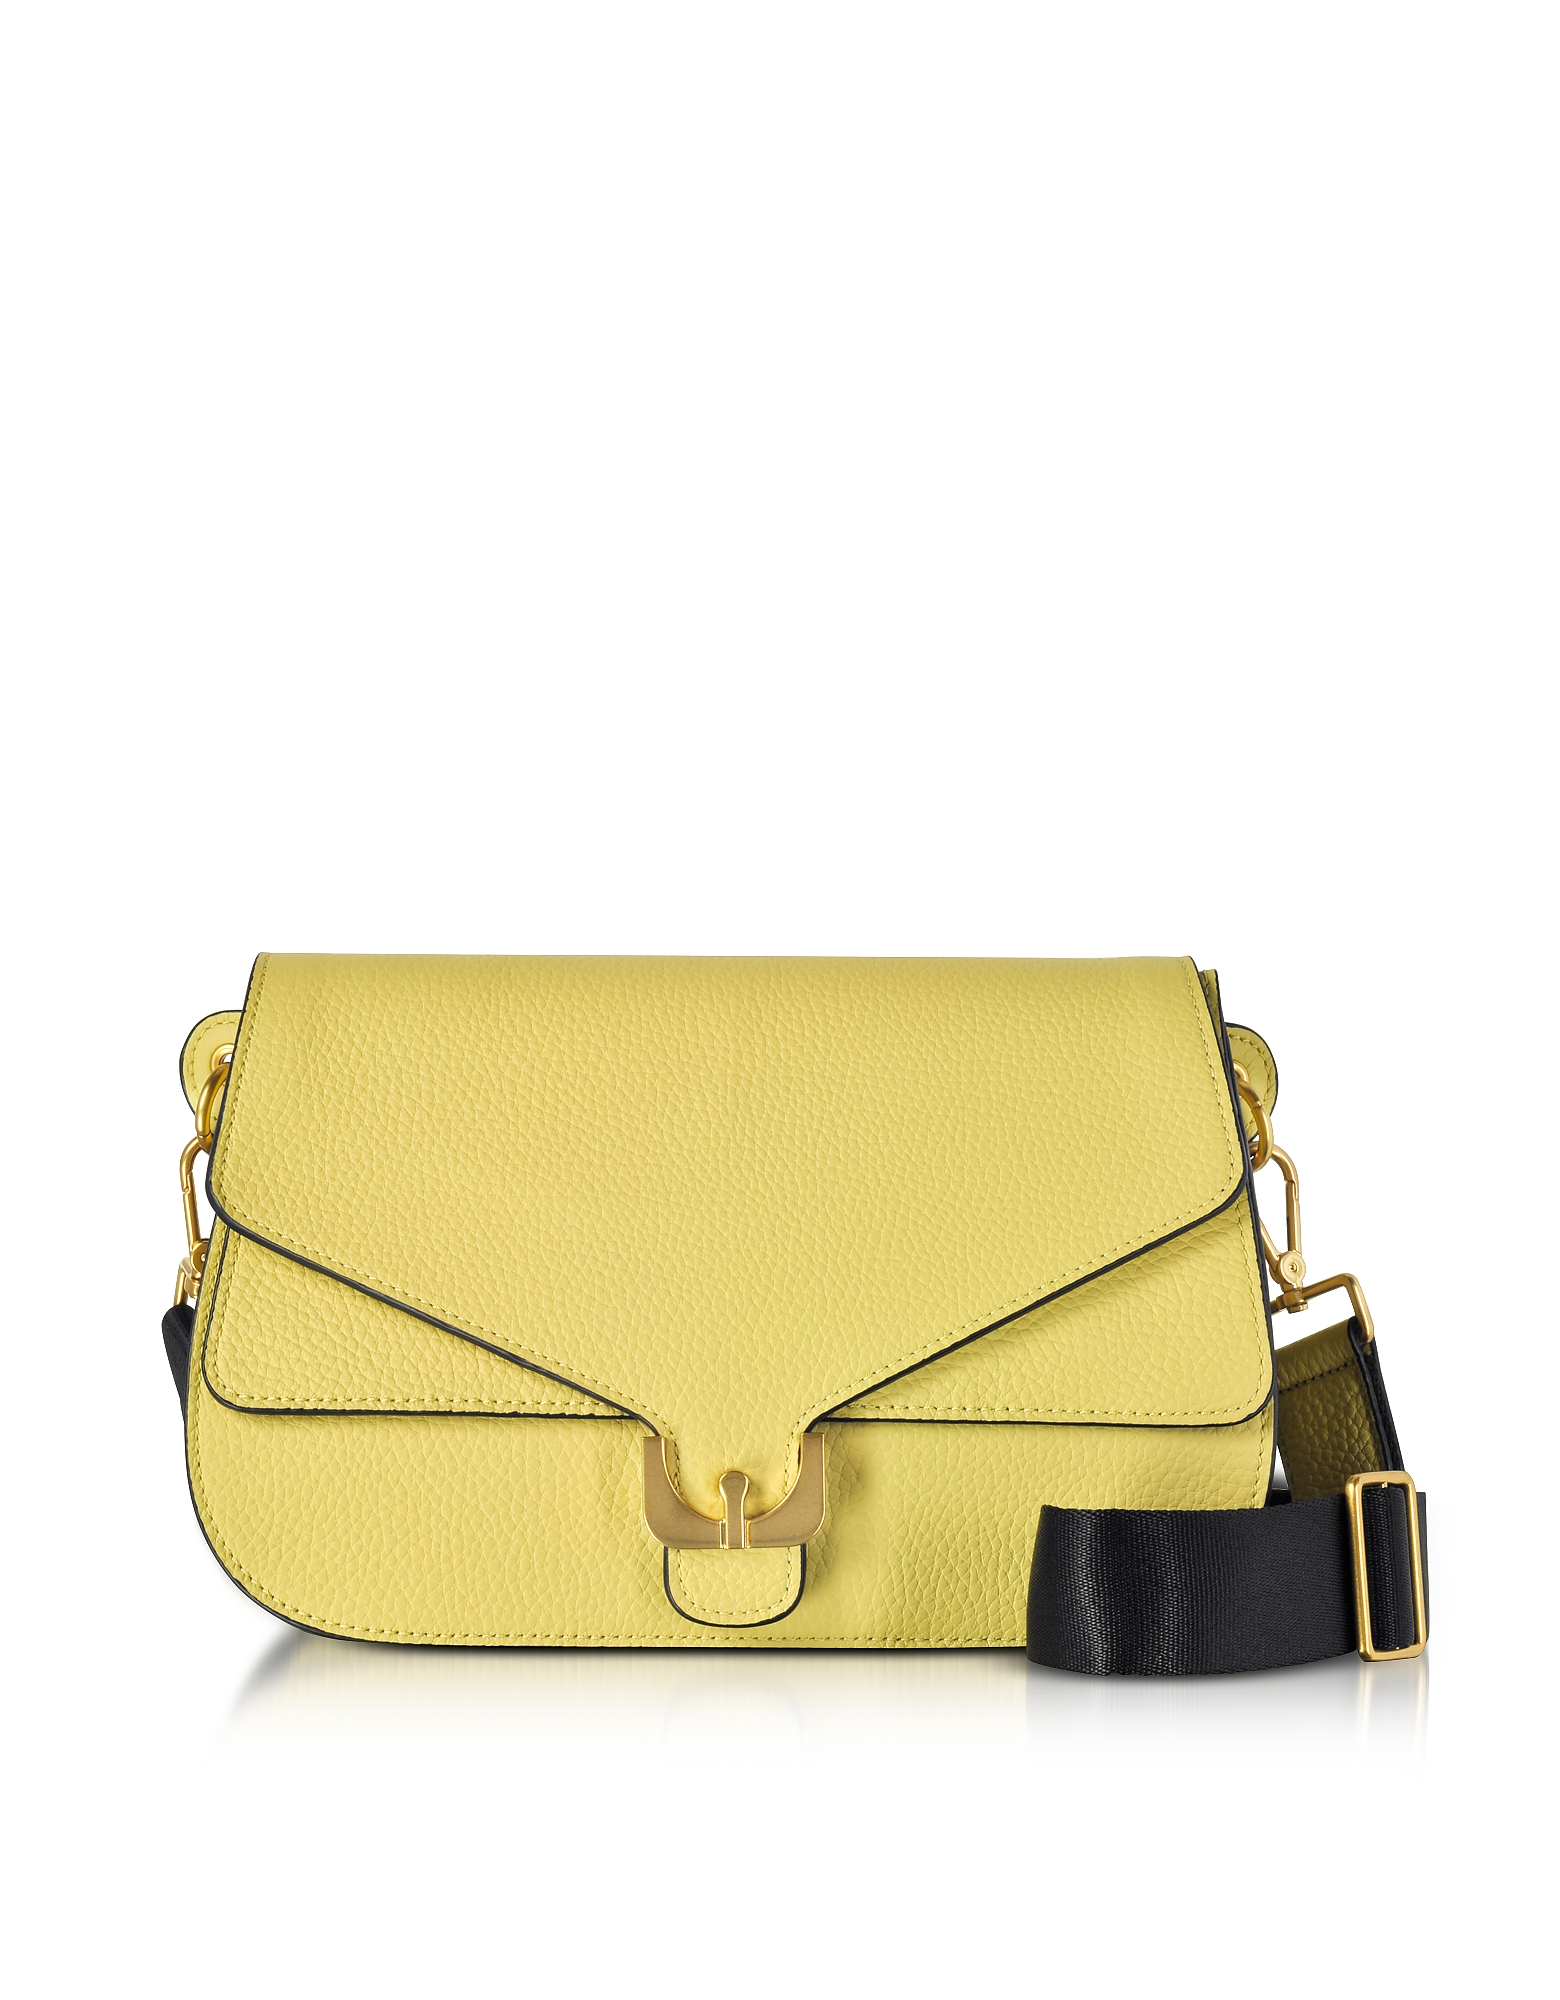 Coccinelle Handbags, Pebbled Leather Ambrine Shoulder Bag